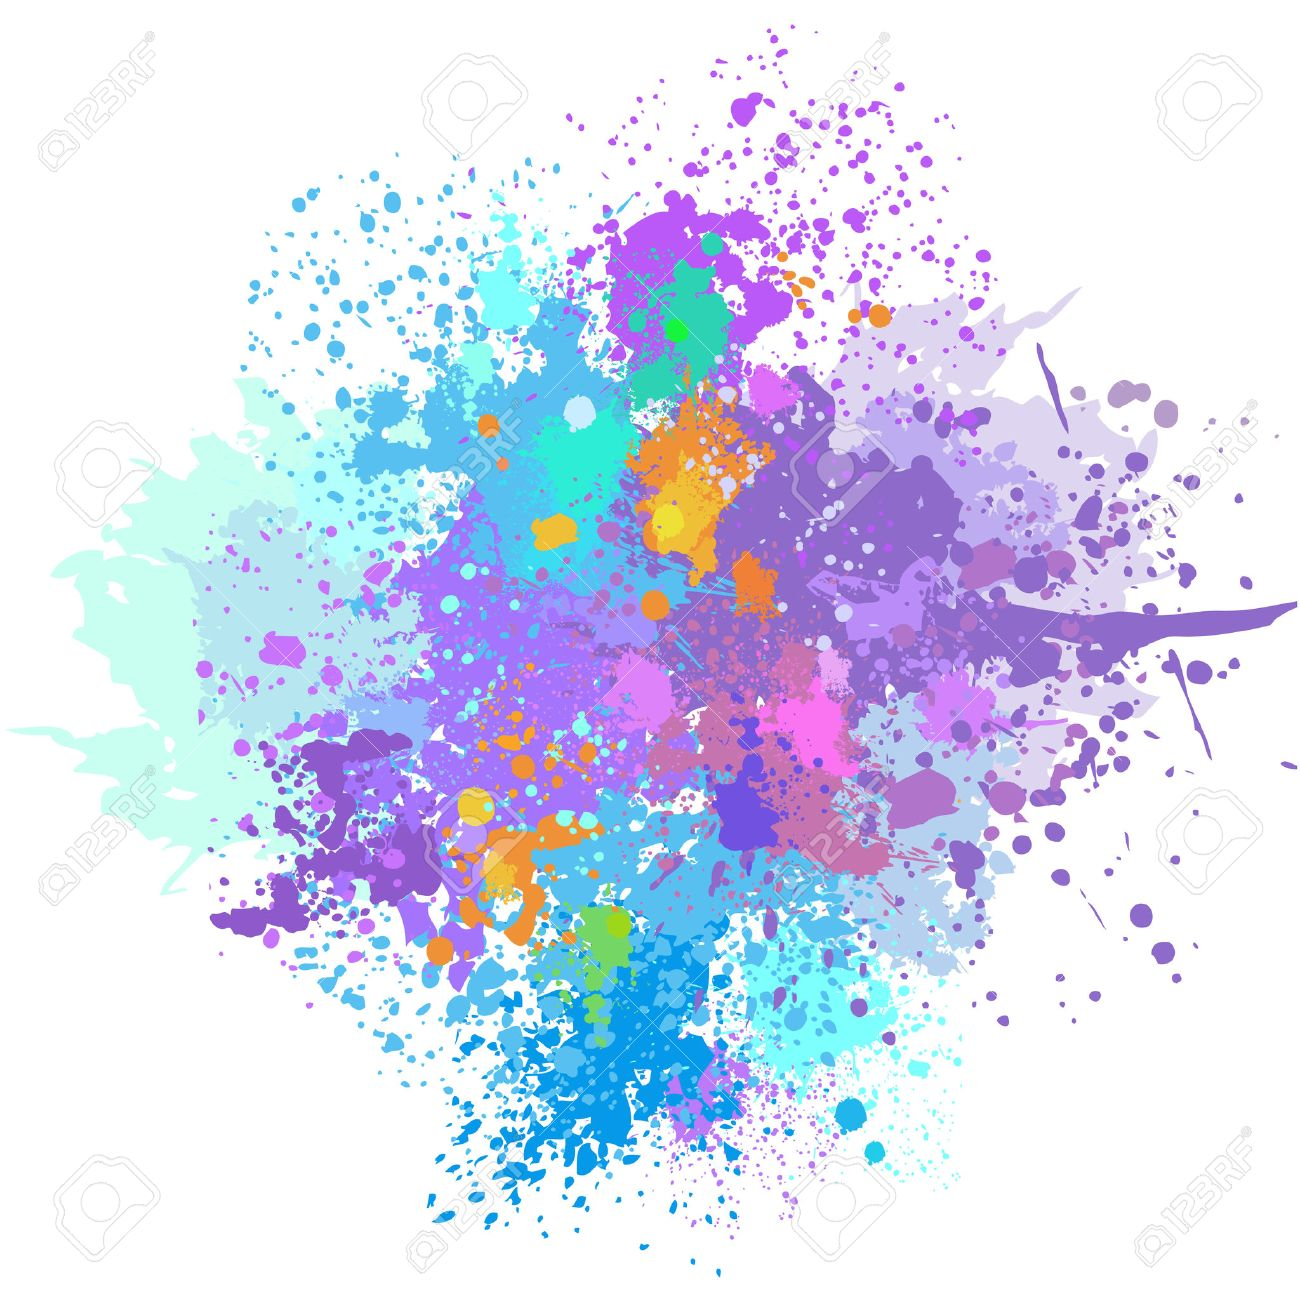 Color background of paint splashes - 52181244